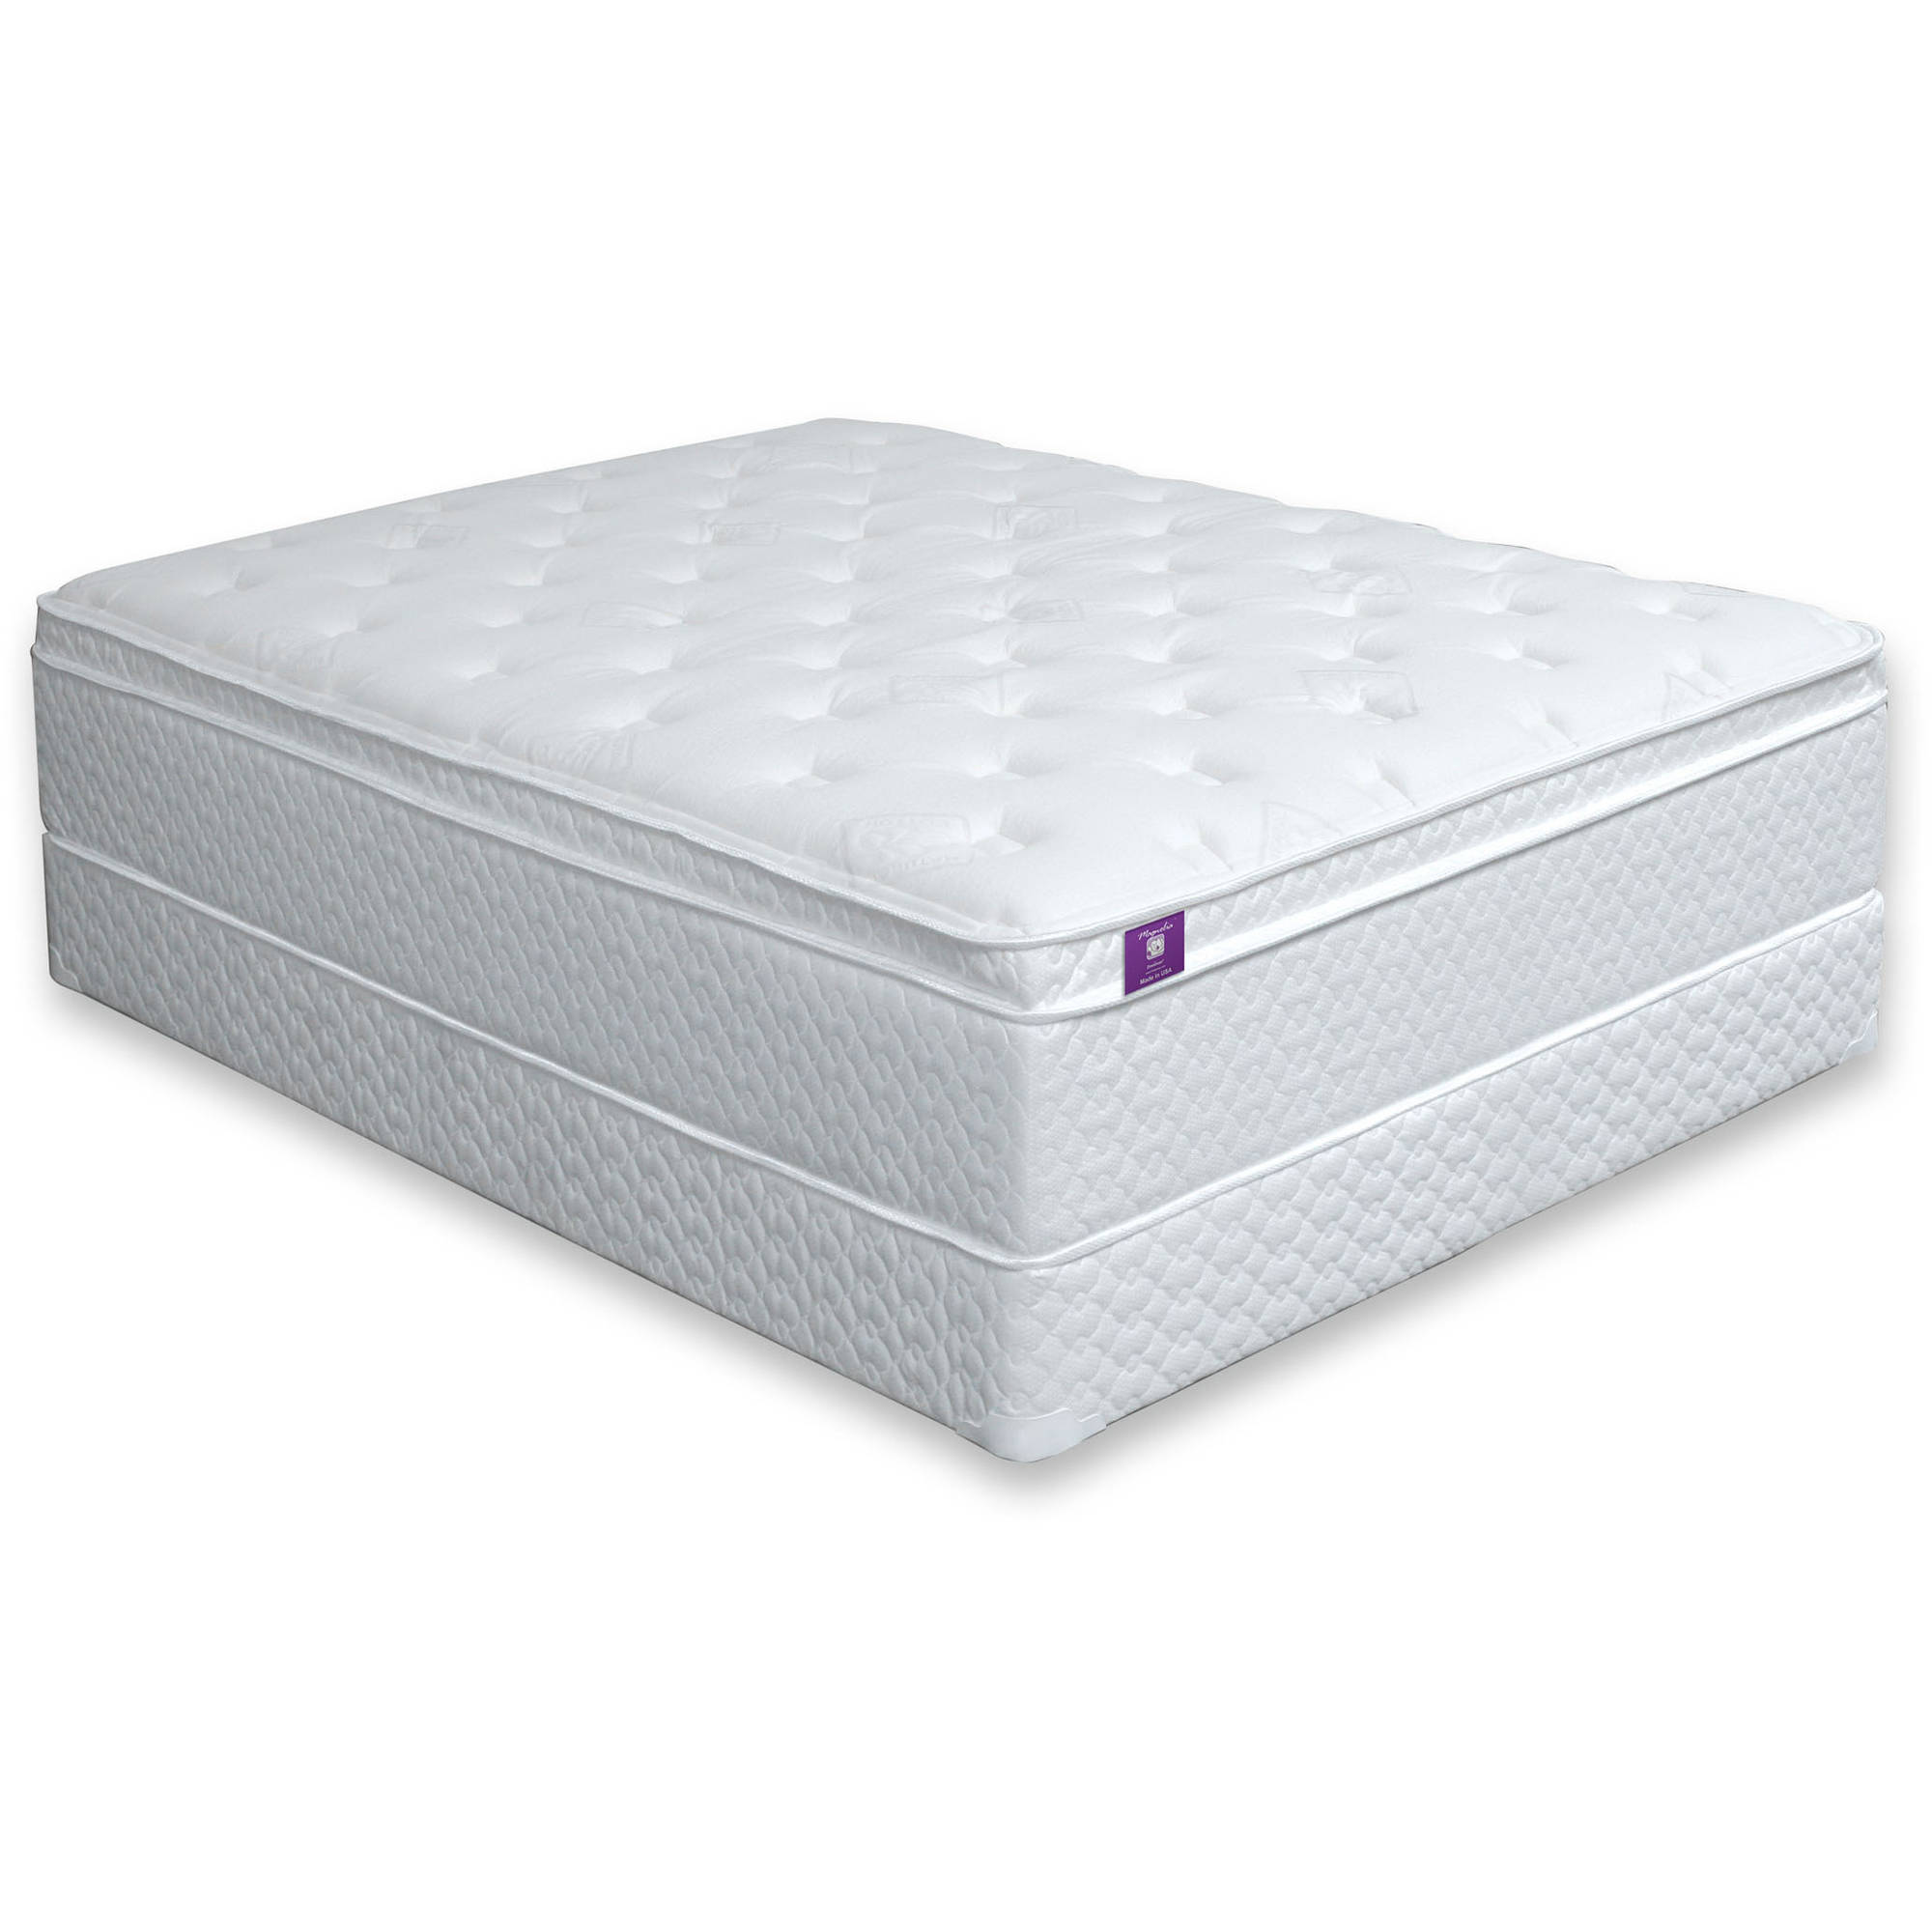 "miBasics Tulsa 16"" Euro Pillow-Top Mattress, Multiple Sizes"